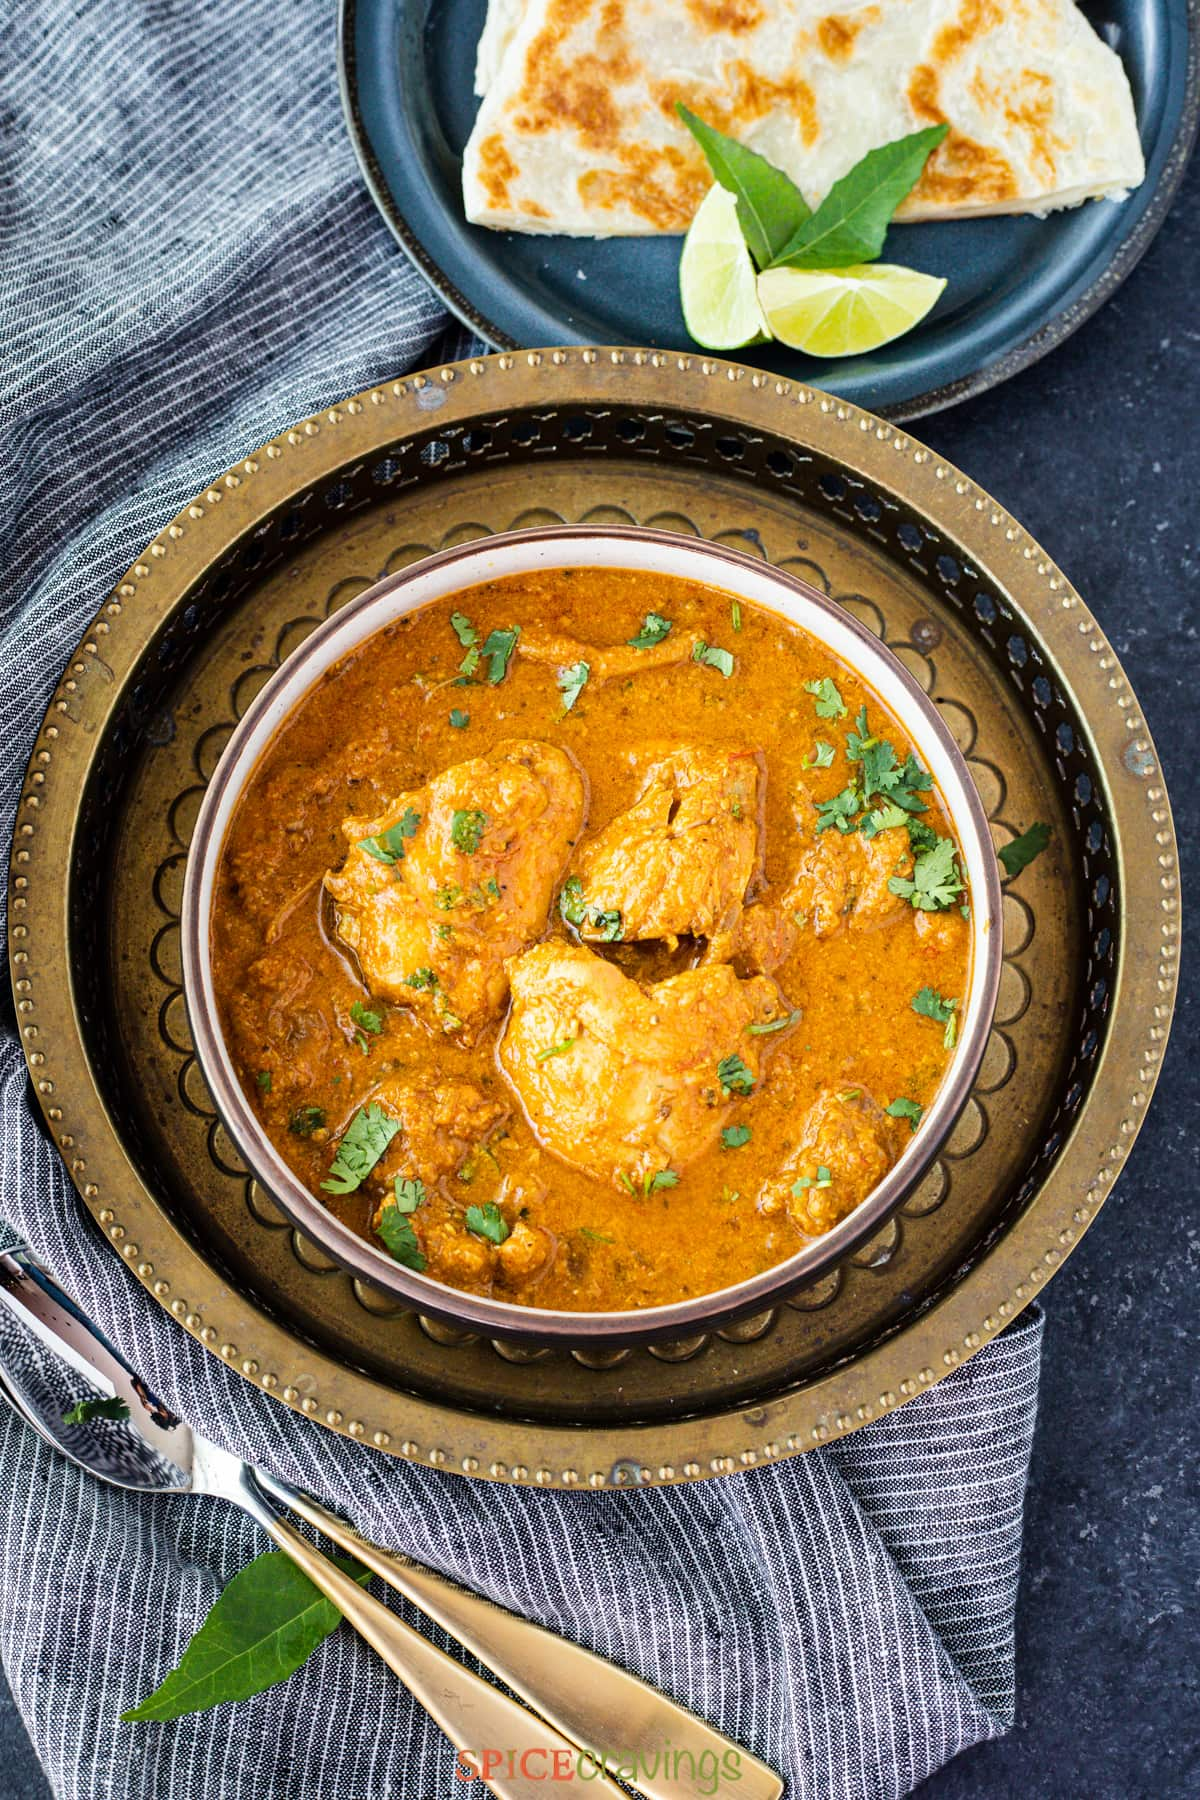 chicken pepper curry in bowl on metal plate